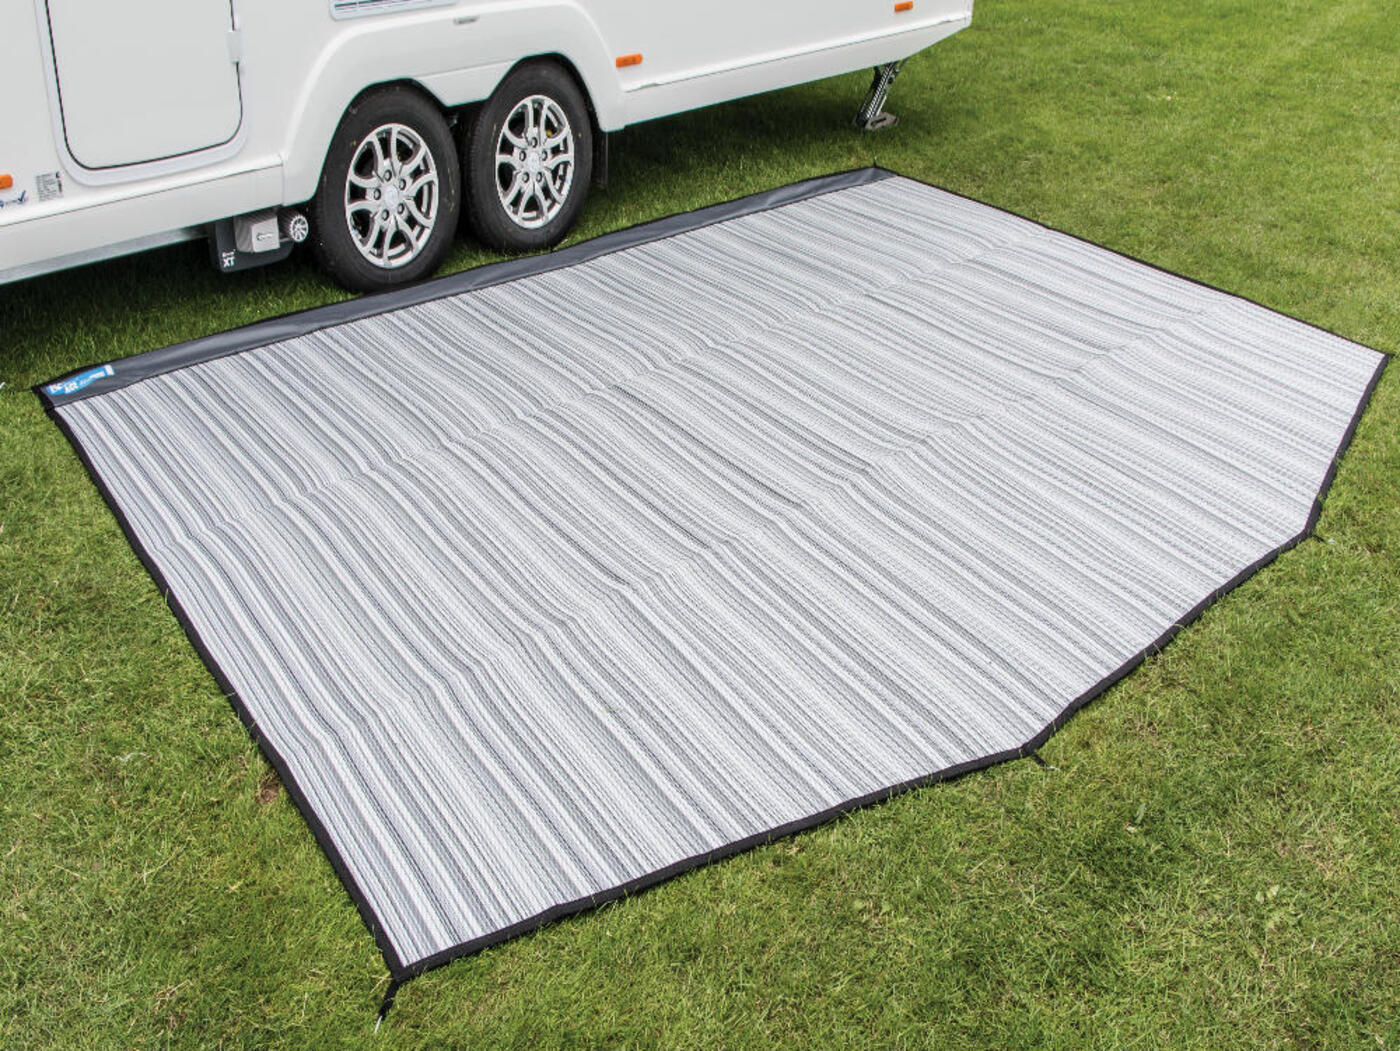 Accessory Shop Awnings Amp Accessories Groundsheets